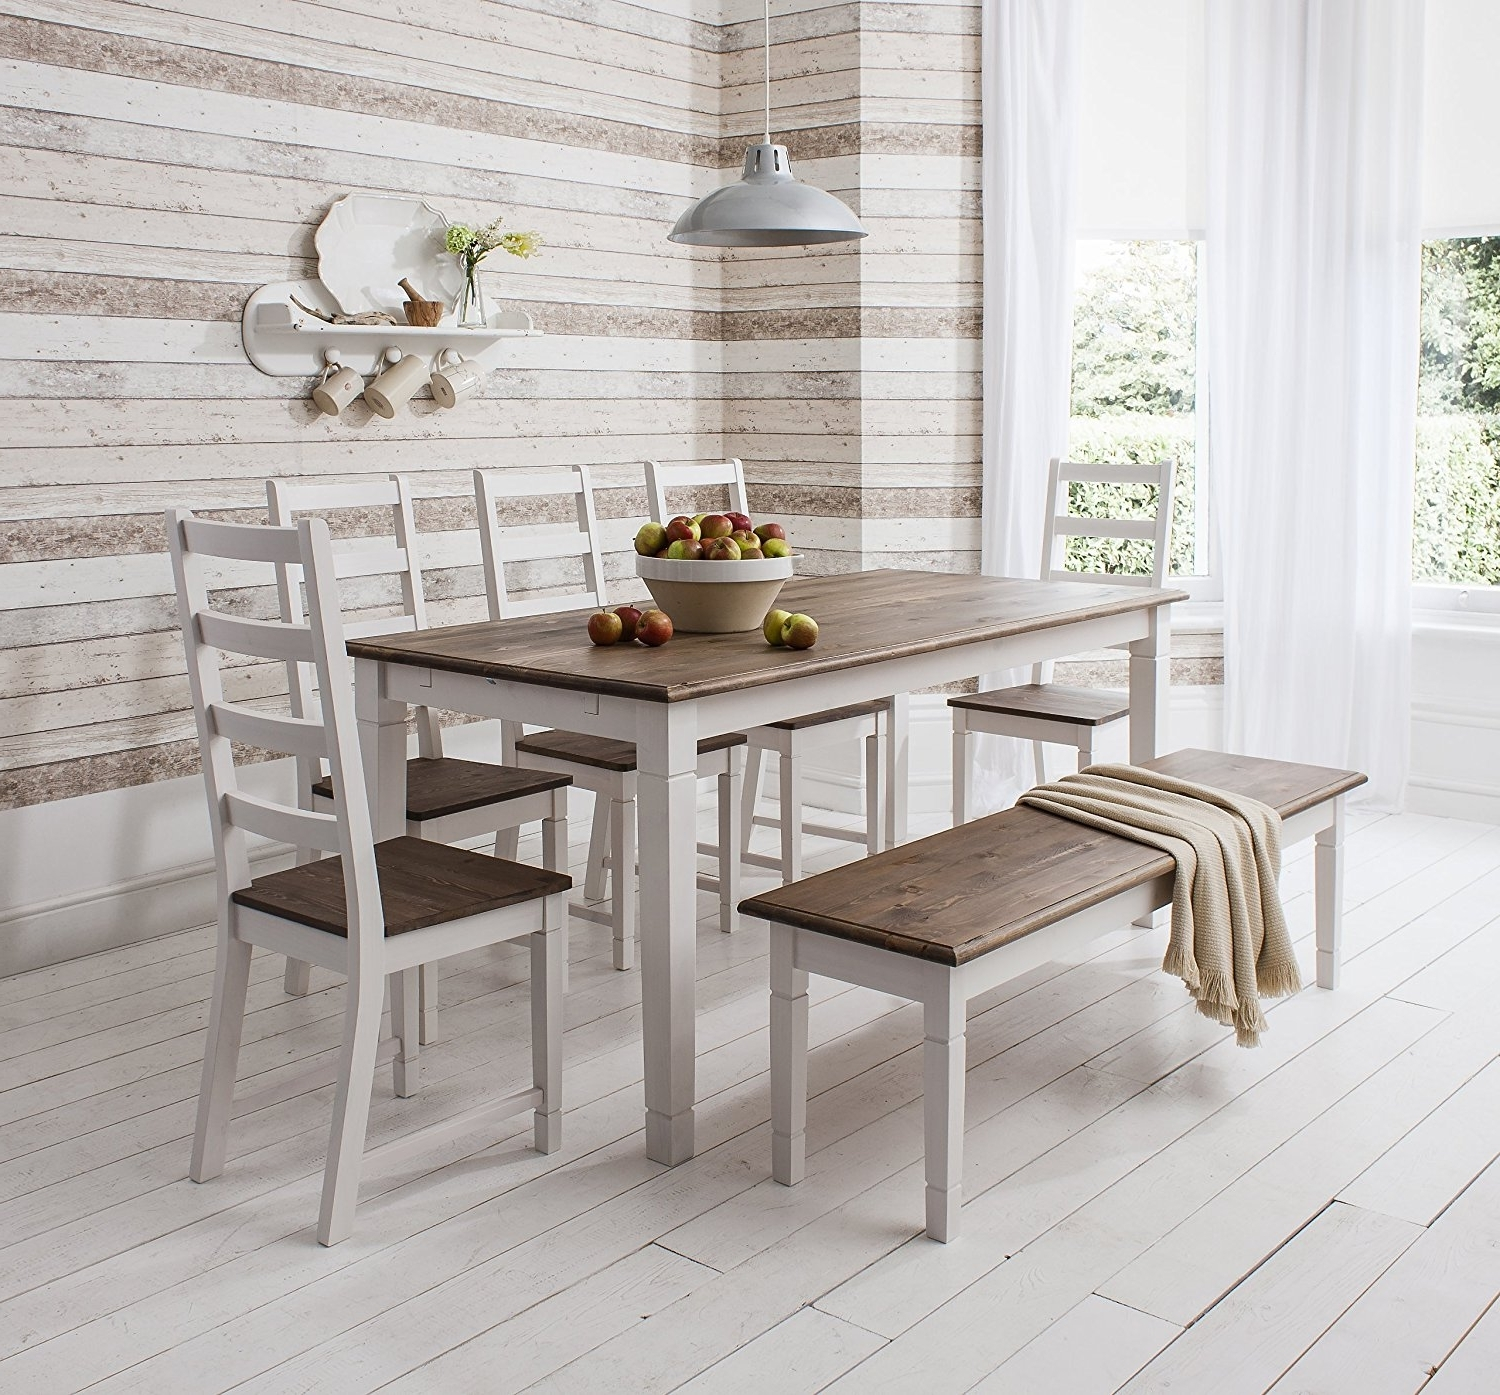 Widely Used Imágenes De White Wooden Dining Room Table And Chairs Intended For Combs 5 Piece 48 Inch Extension Dining Sets With Pearson White Chairs (View 25 of 25)